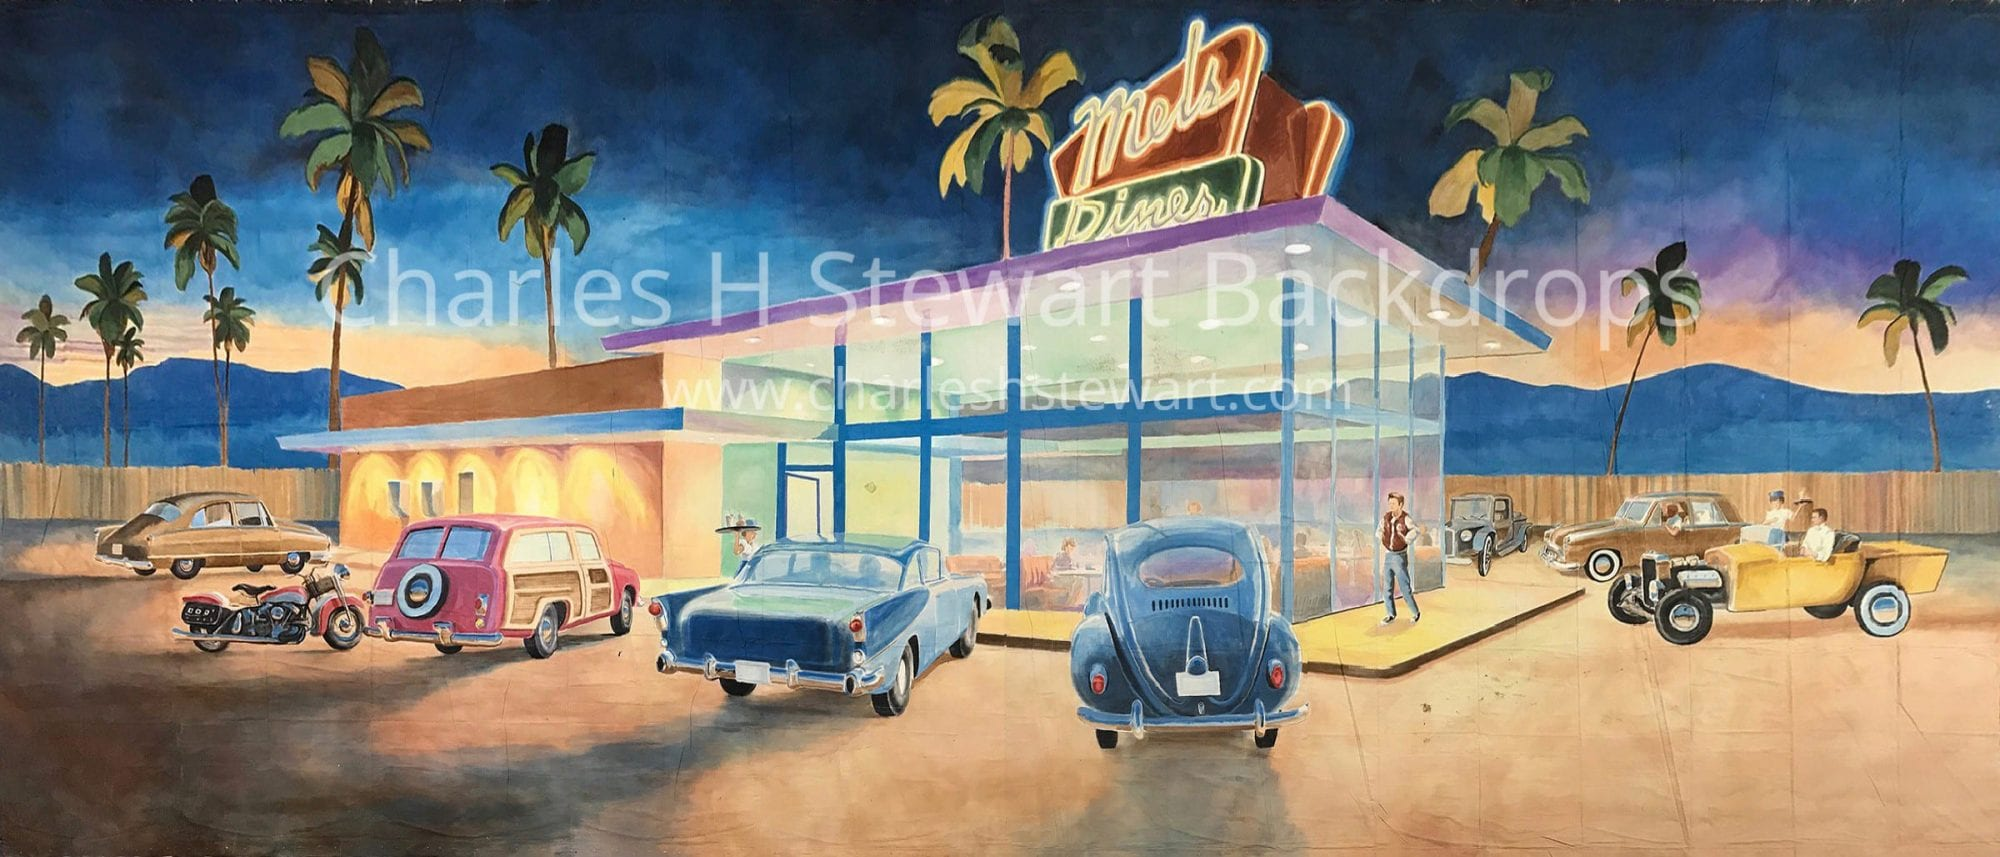 1950s Diner Exterior Backdrop Backdrops By Charles H Stewart